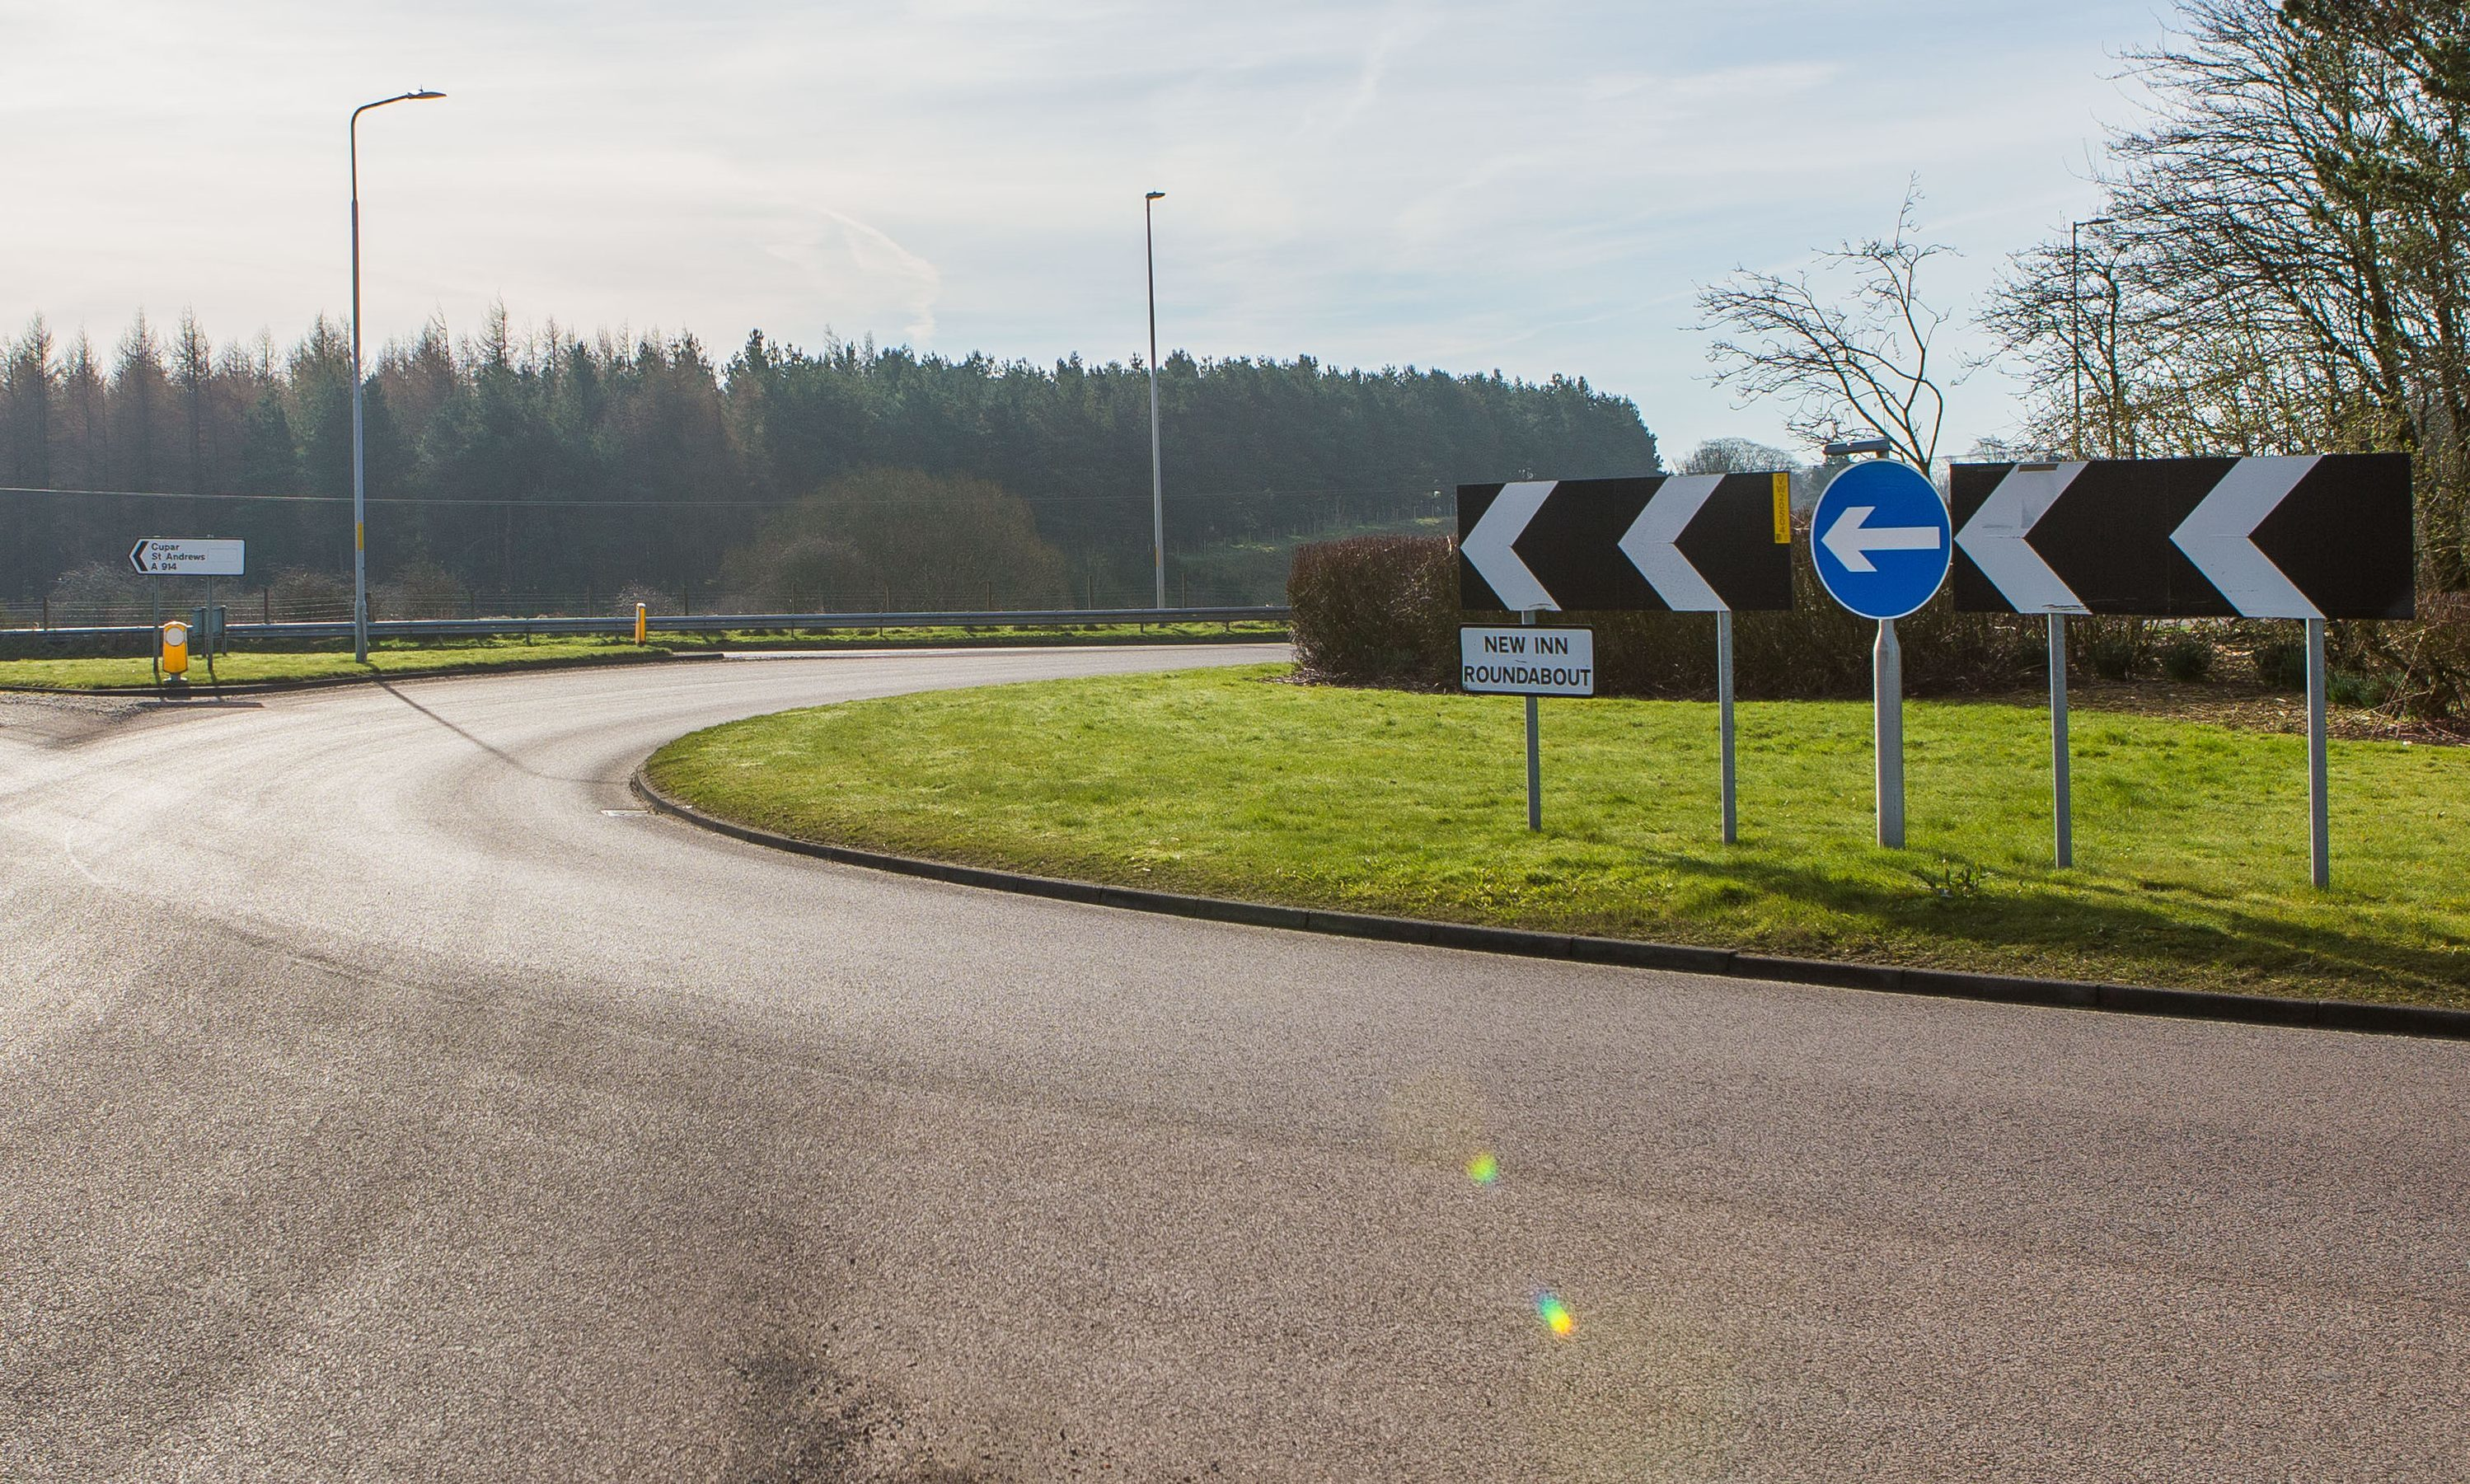 The New Inn roundabout, near Freuchie.